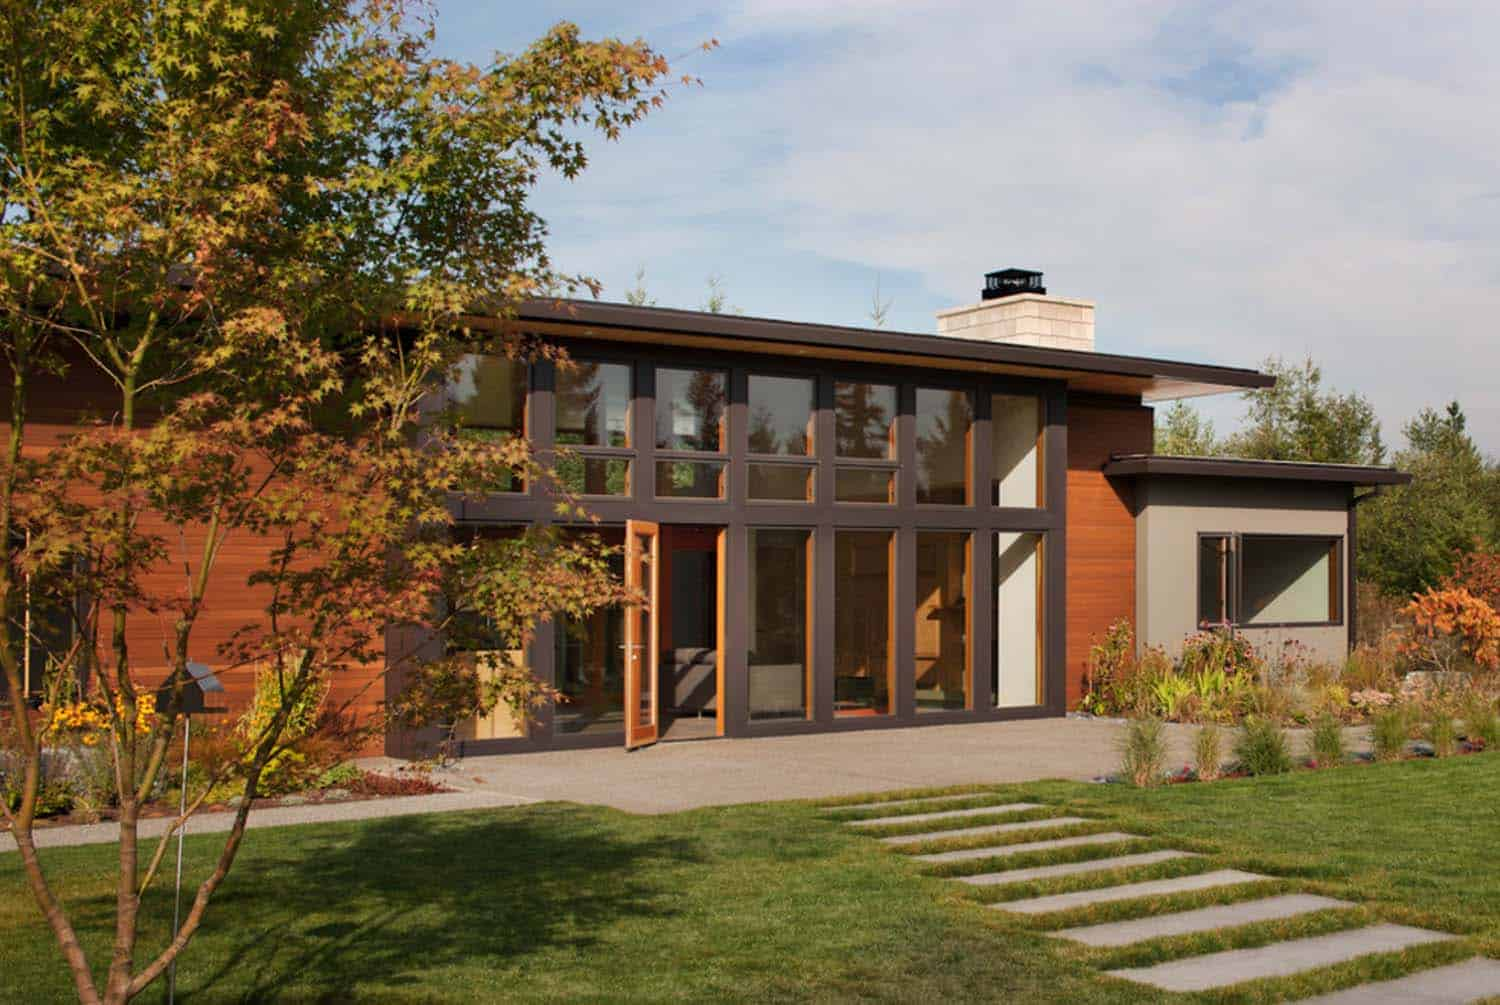 Livable Modern Home-Coates Design Architects-09-1 Kindesign